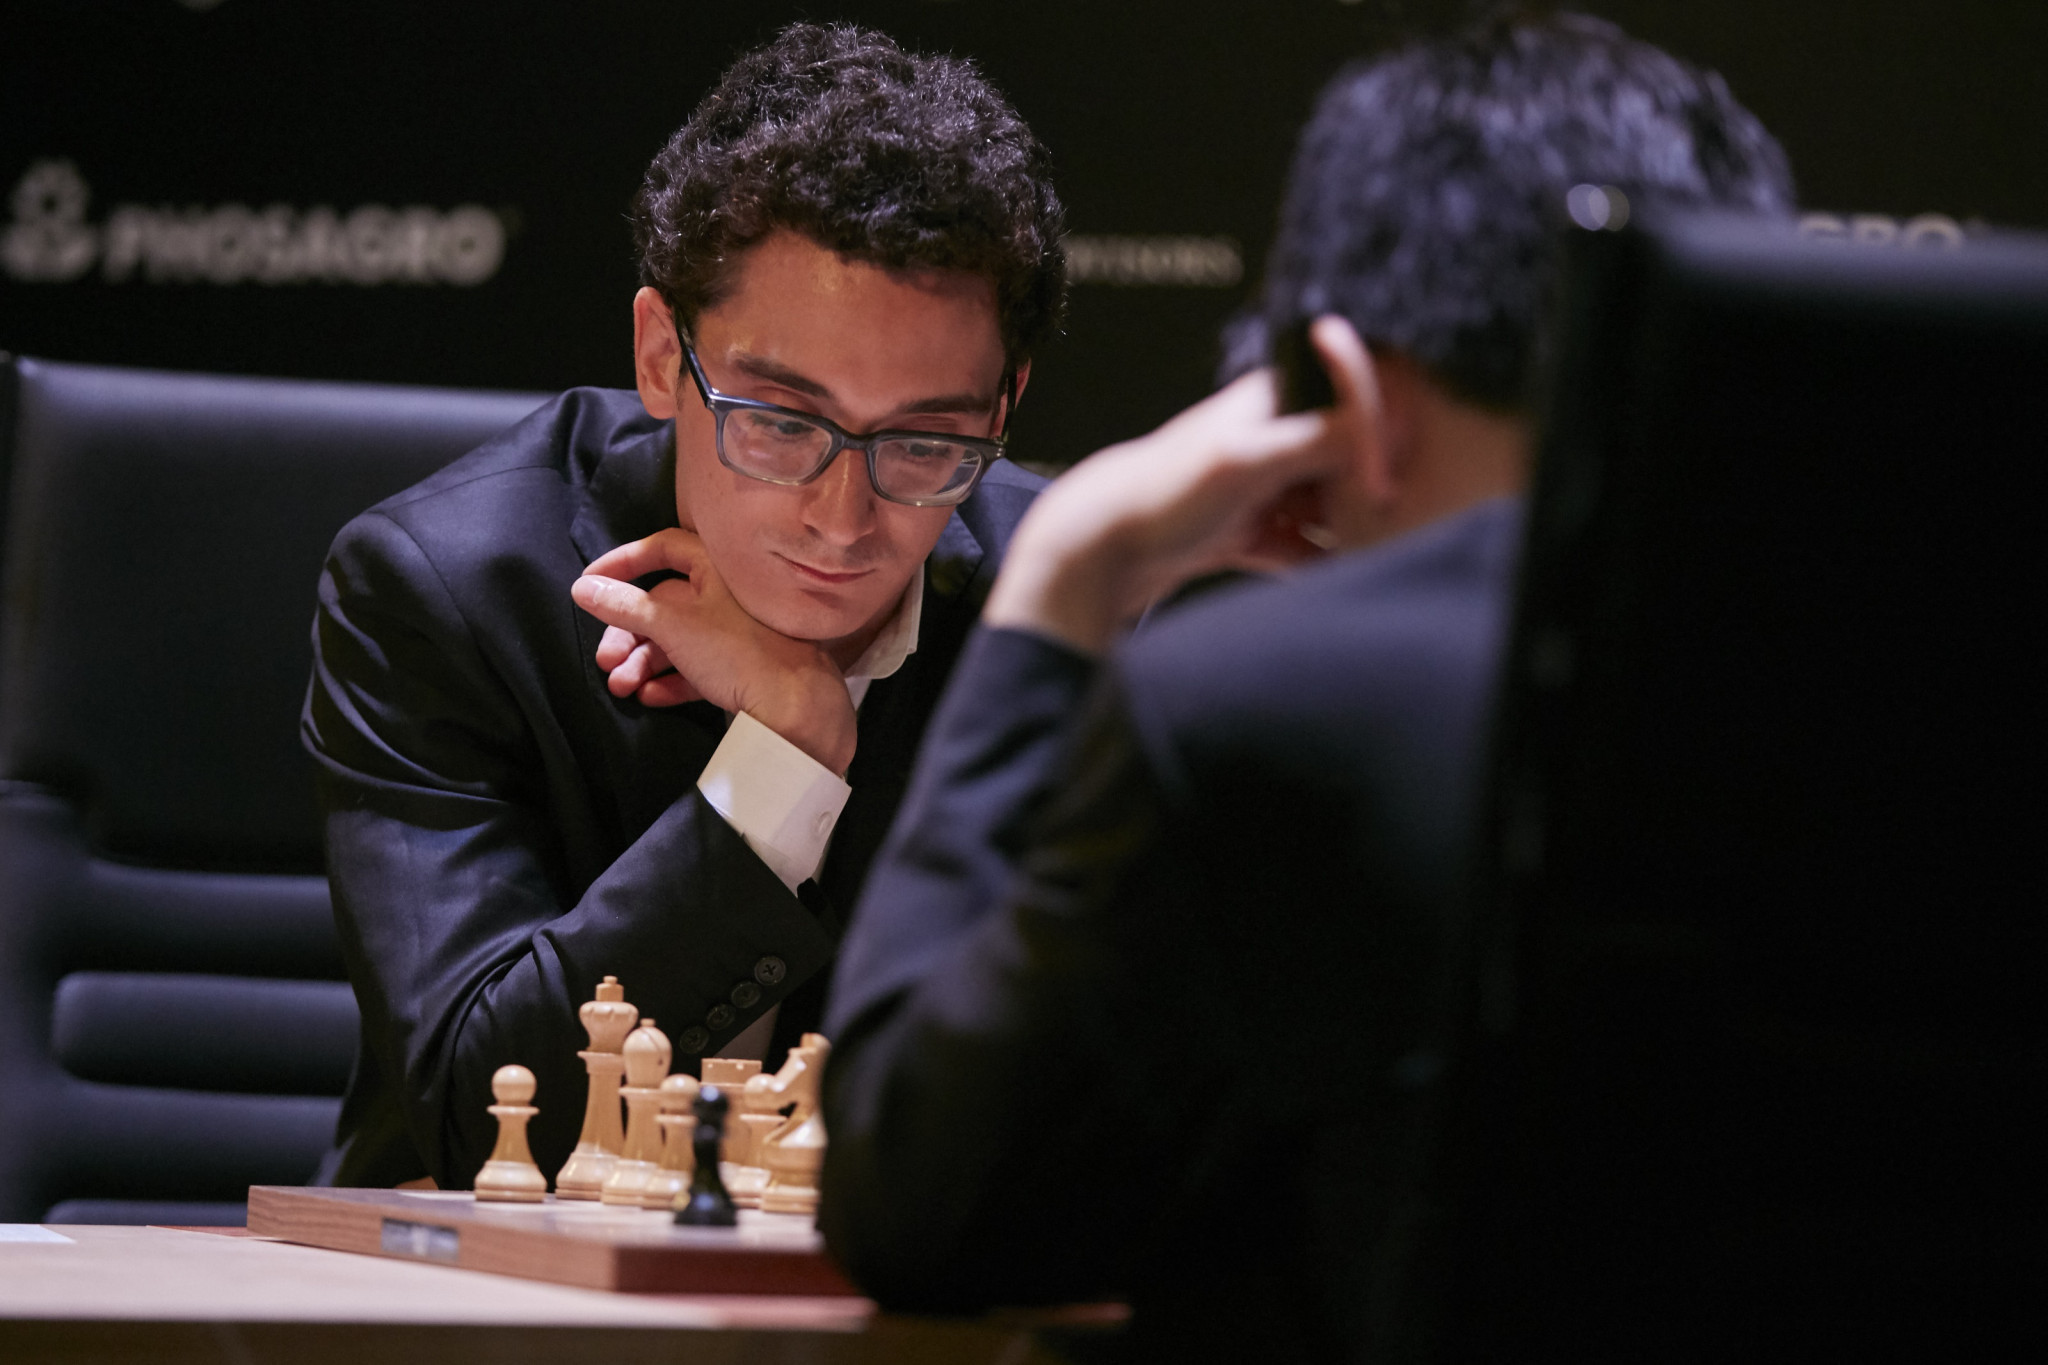 The United States' Fabiano Caruana has returned to the top of the World Chess Federation Candidates Tournament leaderboard ©Getty Images